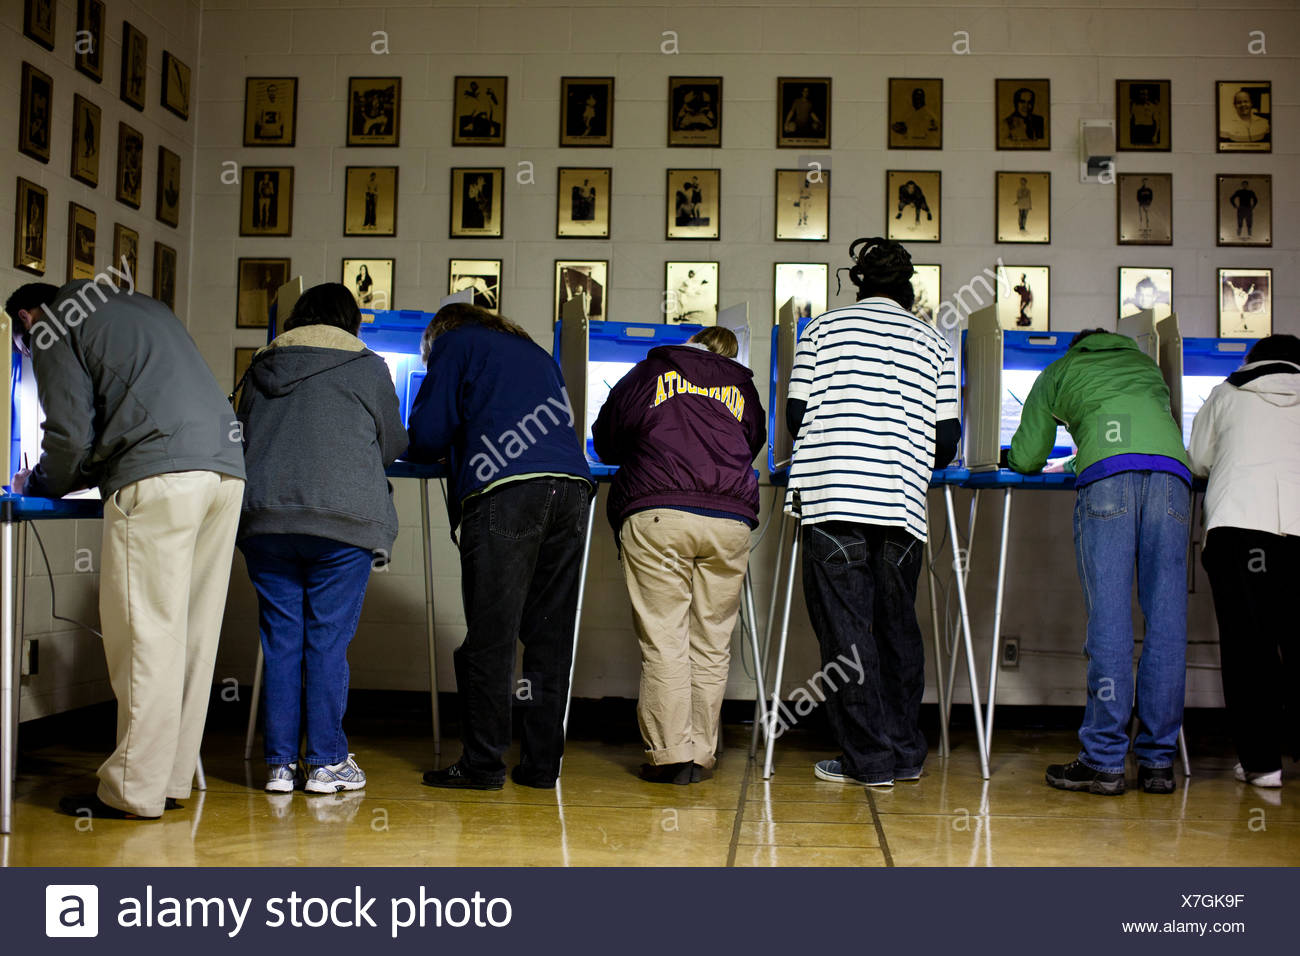 Voters at the polls on election day 2012, Edison High School, NE Minneapolis, MN. - Stock Image